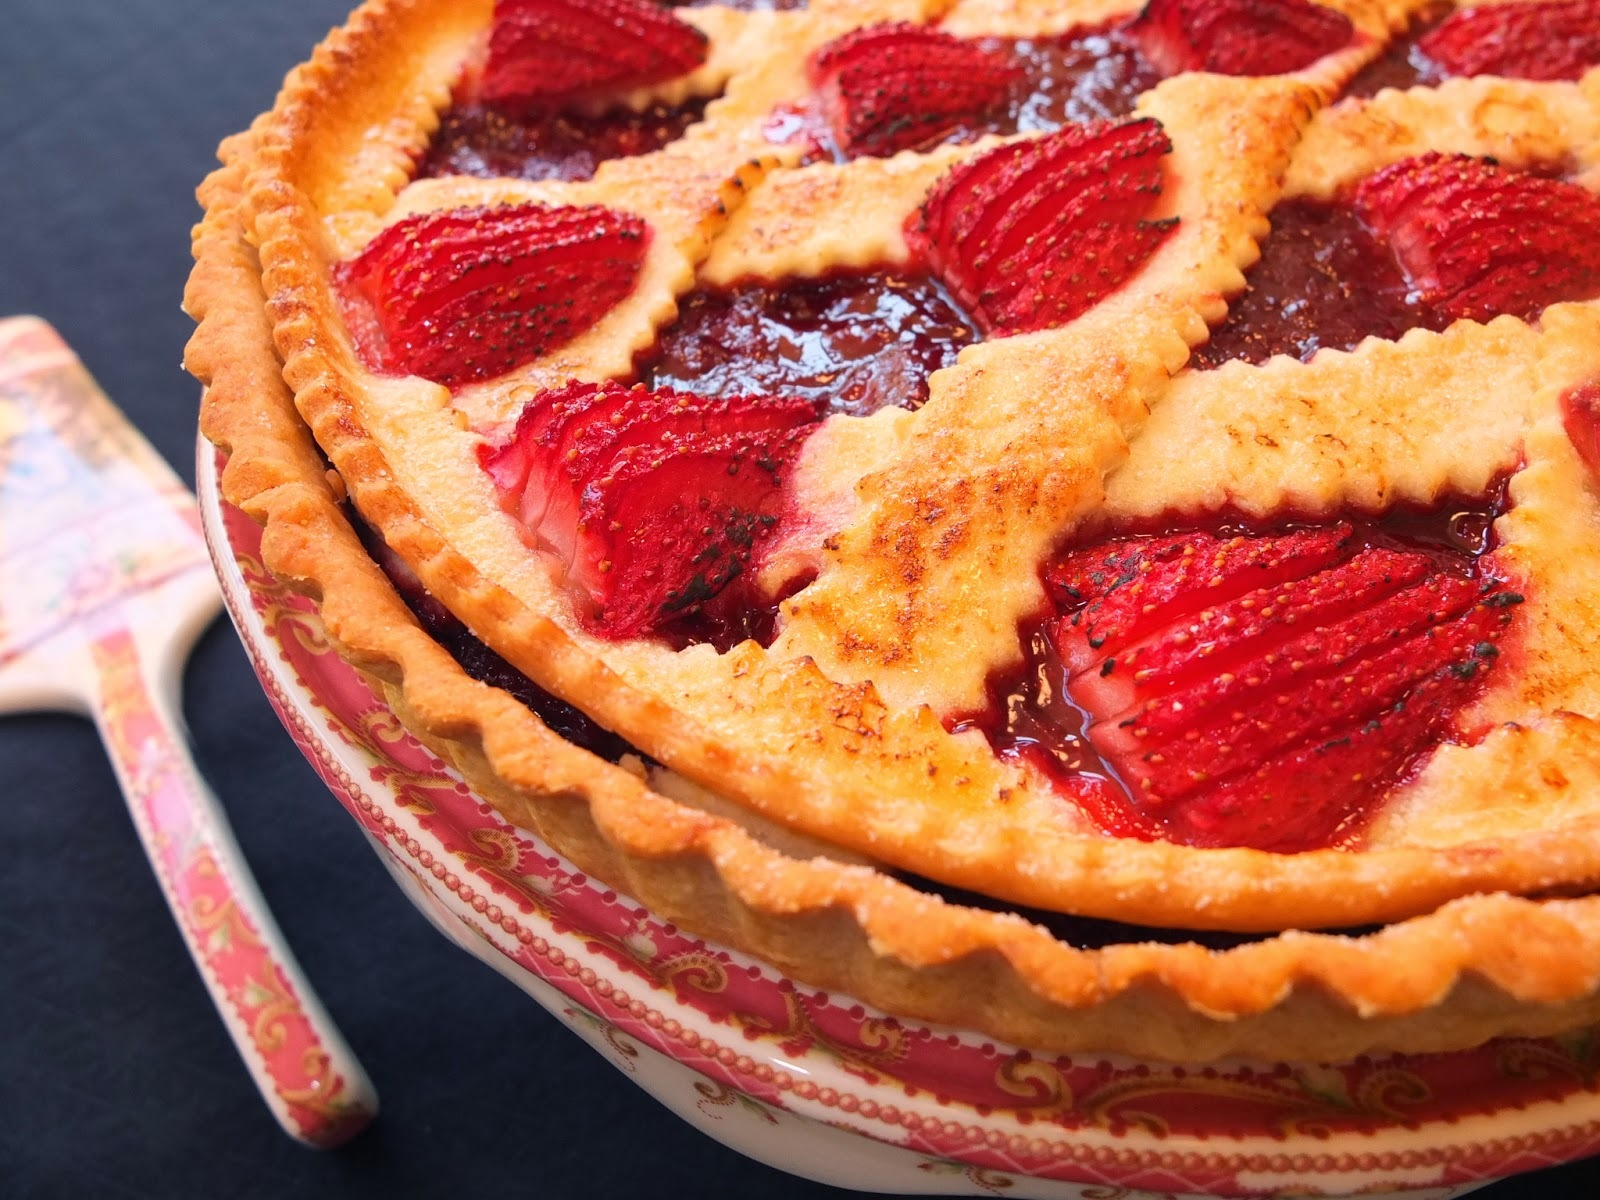 Crostata de fresones